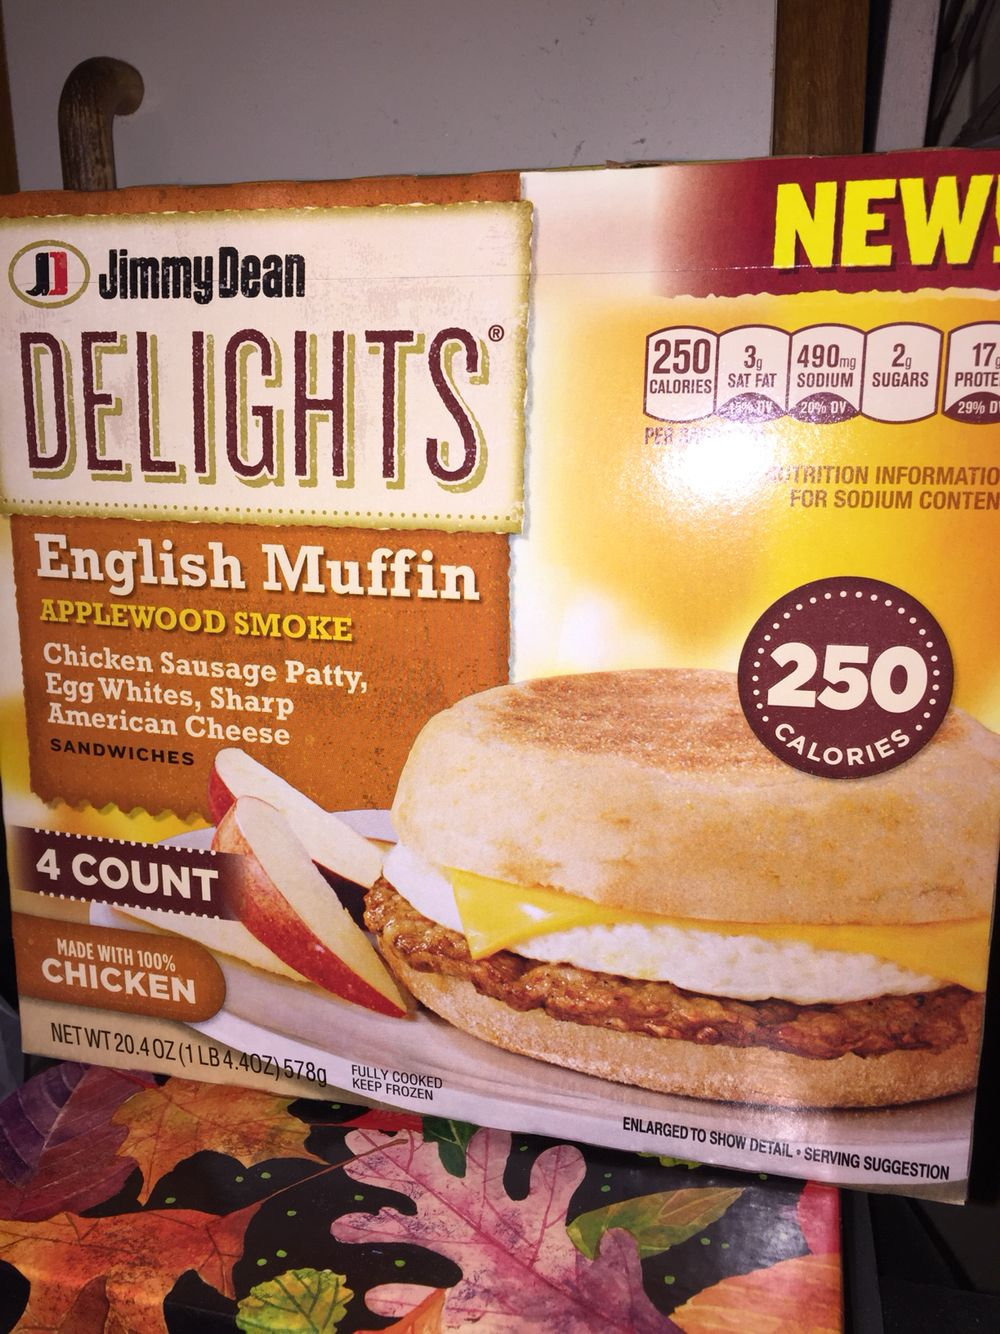 Jimmy dean delights english muffin applewood smoked